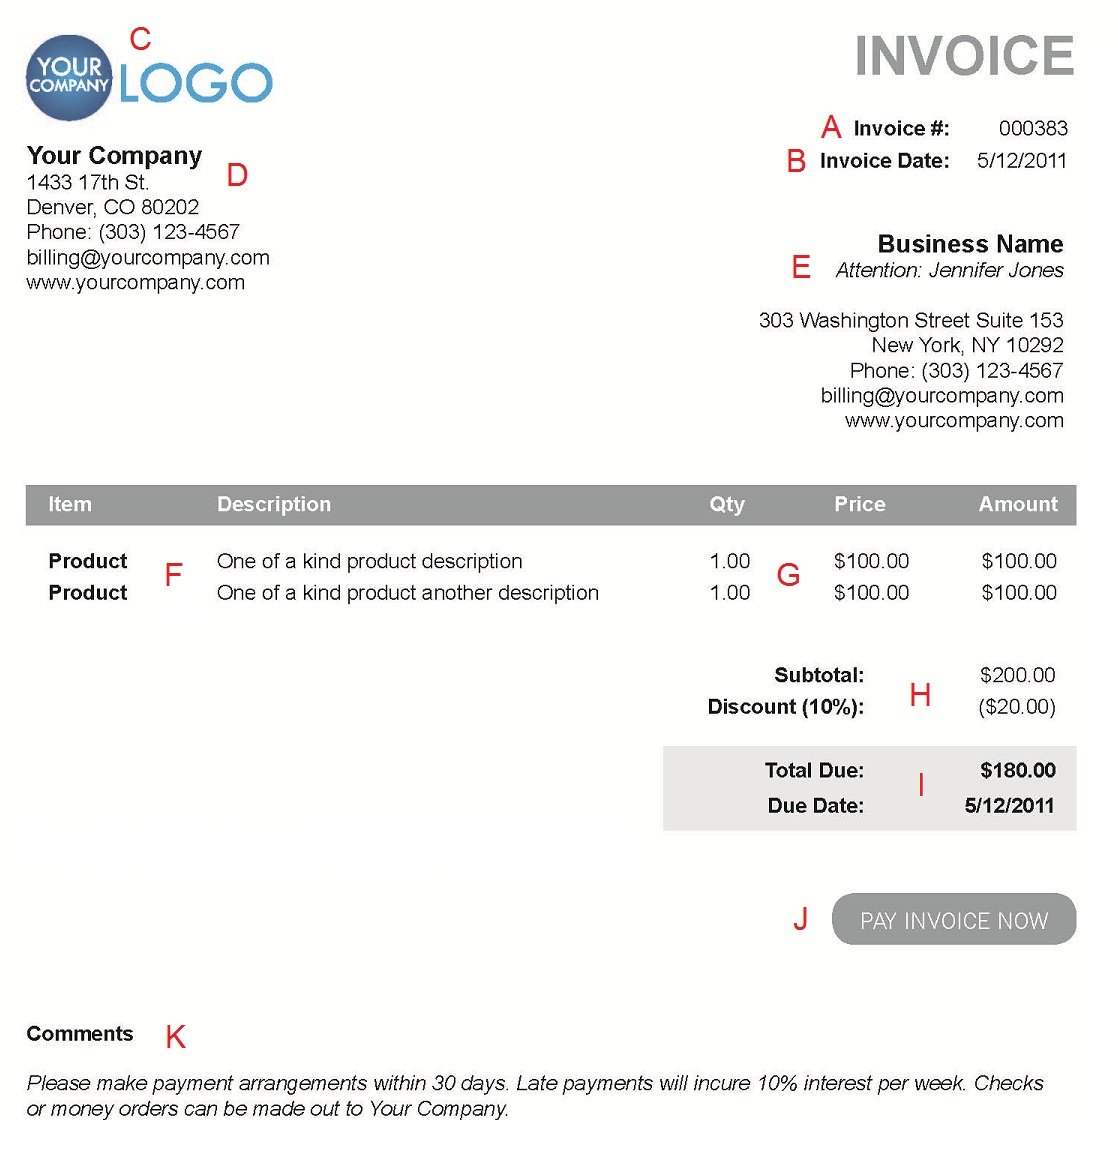 Shopdesignsus  Surprising The  Different Sections Of An Electronic Payment Invoice With Excellent A  With Attractive Confirmation Of Receipt Template Also The Neat Receipt In Addition Receipt Acknowledgement Sample And Google Apps Receipt As Well As Free Printable Receipt Book Additionally Examples Of Receipts For Payment From Paysimplecom With Shopdesignsus  Excellent The  Different Sections Of An Electronic Payment Invoice With Attractive A  And Surprising Confirmation Of Receipt Template Also The Neat Receipt In Addition Receipt Acknowledgement Sample From Paysimplecom